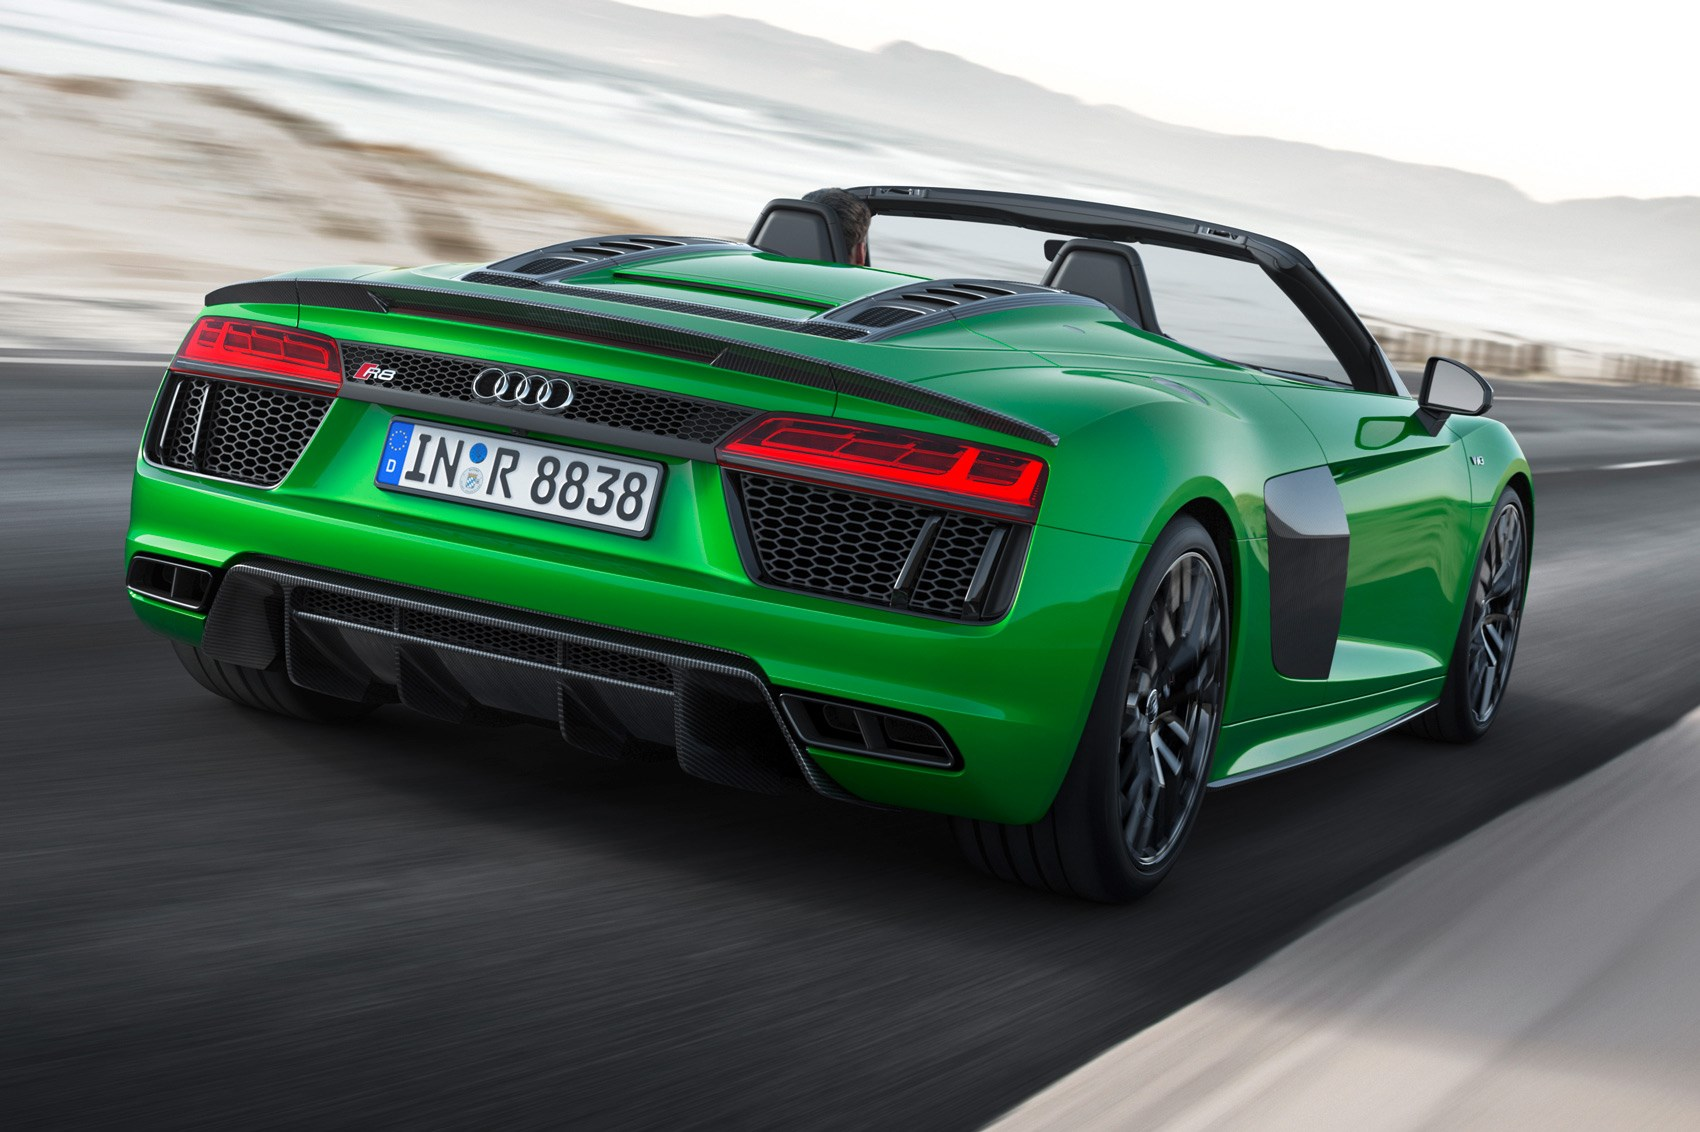 R8 V10 plus is Audi's fastest open-top ever class=